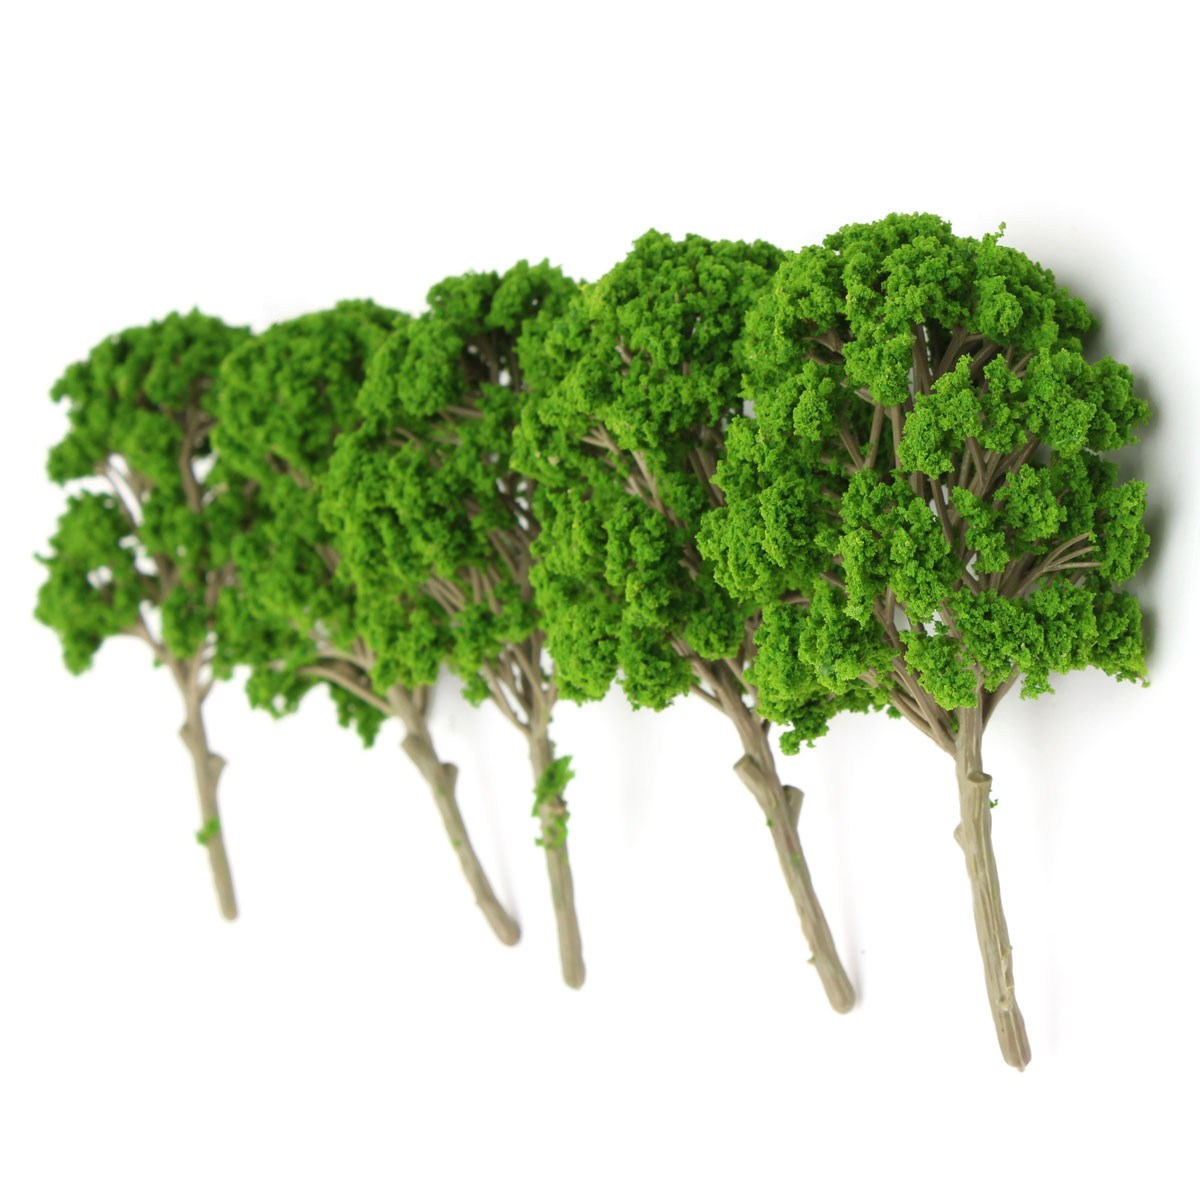 5pcs/lot Excellent Quality 15cm Miniature Model Trees For Micro Landscape Train Railway Park Scenery Fit For Home Decoration(China (Mainland))